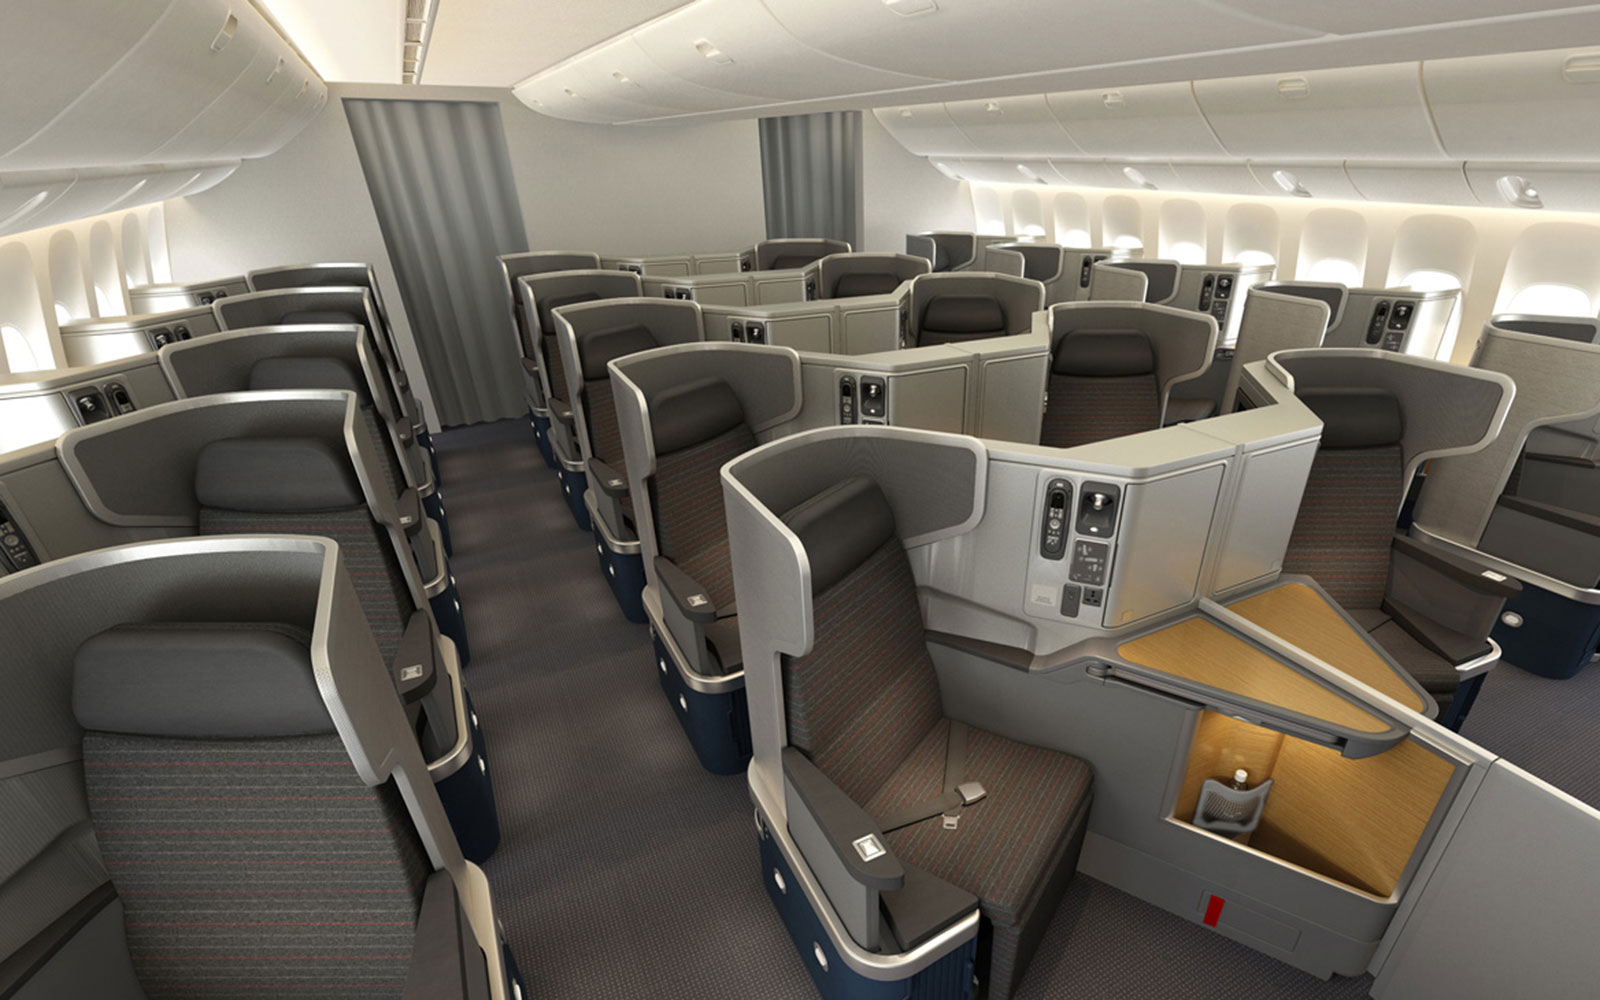 How to Book an American Airlines Business Class Seat For the Price of Economy